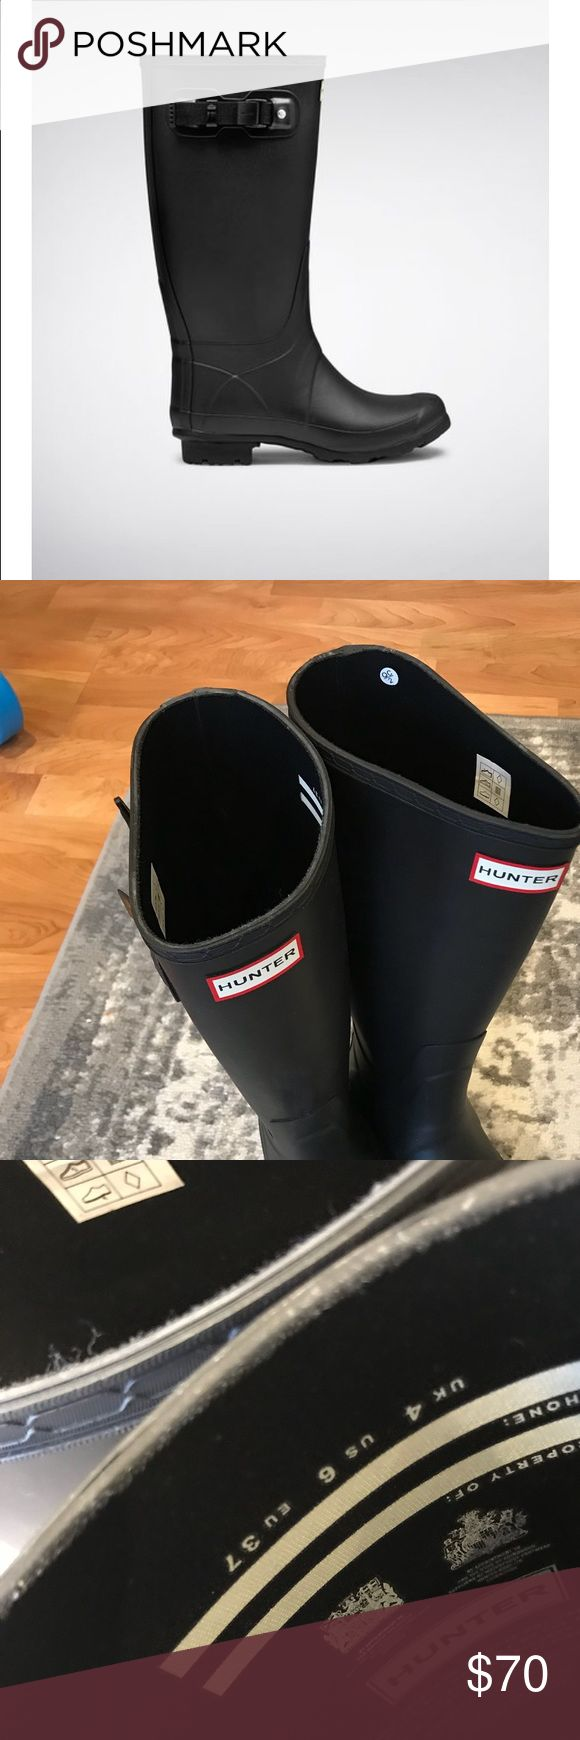 """Hunter Huntress Boots Matte Black sz 6 Like New condition. I purchased these on here without realizing they were the """"Huntress"""" style with a bit wider calf. Looking to get what I paid for them. Size 6 women. Hunter Shoes Winter & Rain Boots"""